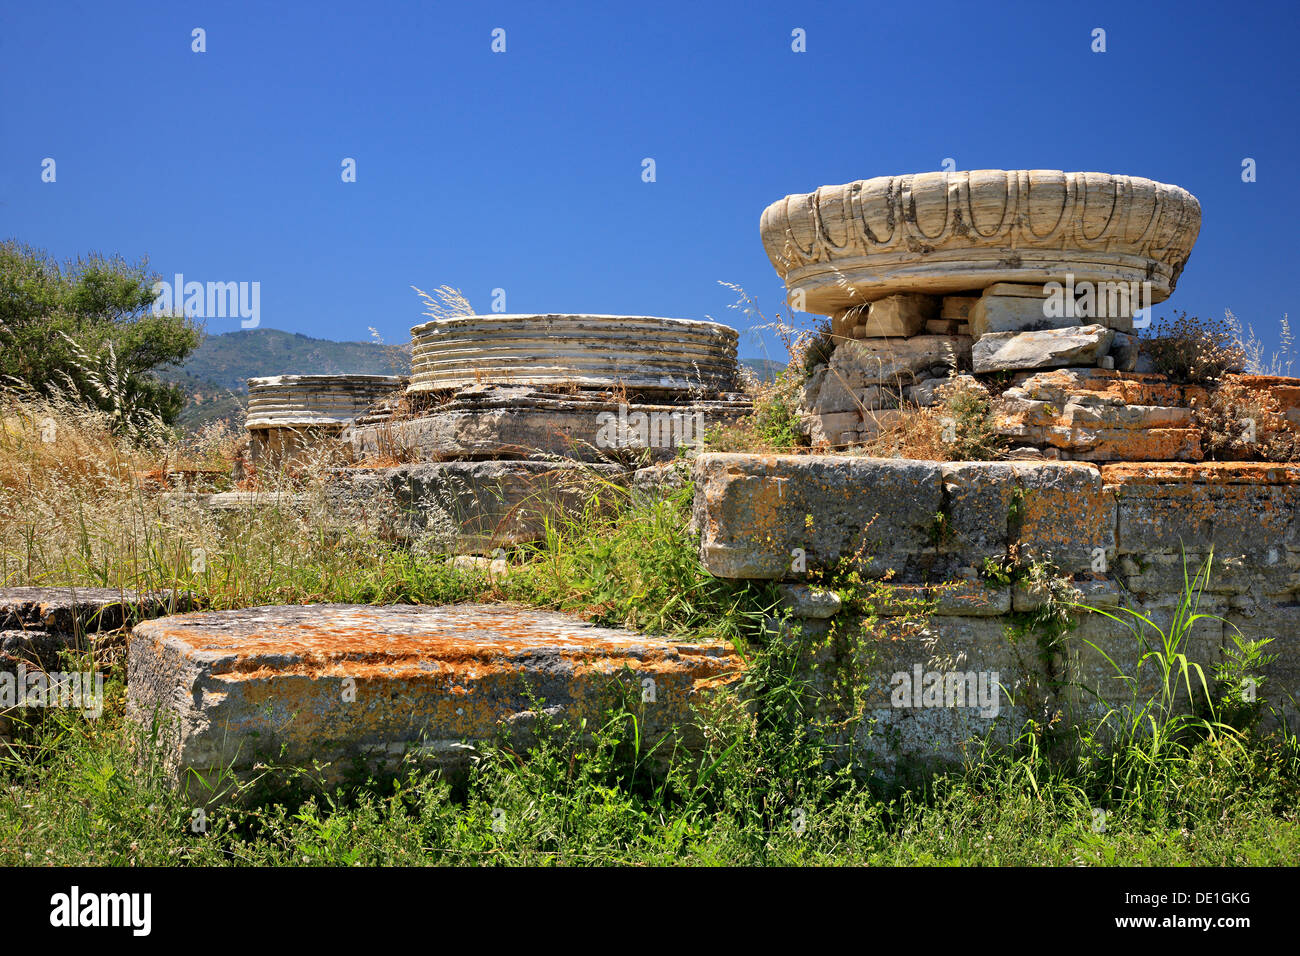 """The temple of Hera (""""Heraion""""), at the archaeological site of Heraion, Samos island, Greece Stock Photo"""